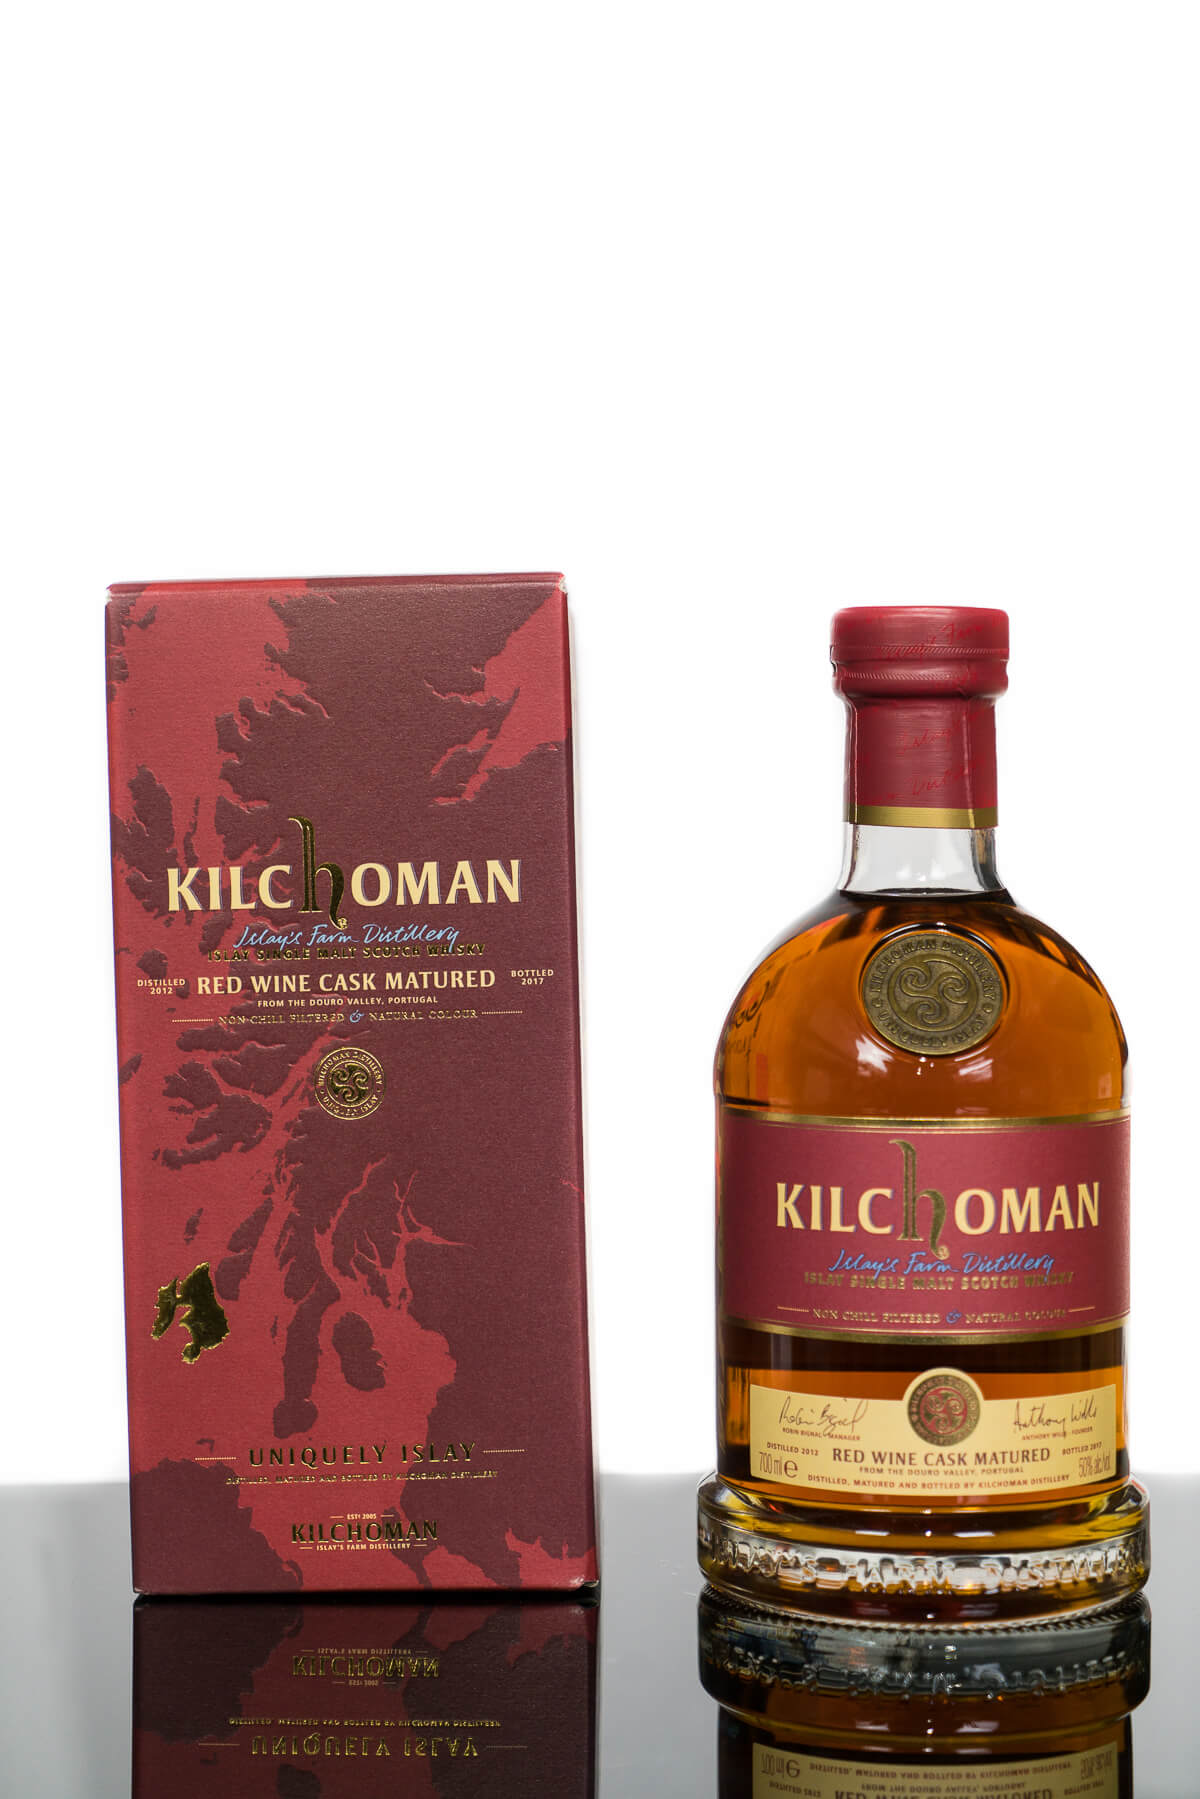 Kilchoman 2012 Red Wine Cask Matured Islay Single Malt Scotch Whisky (700ml)